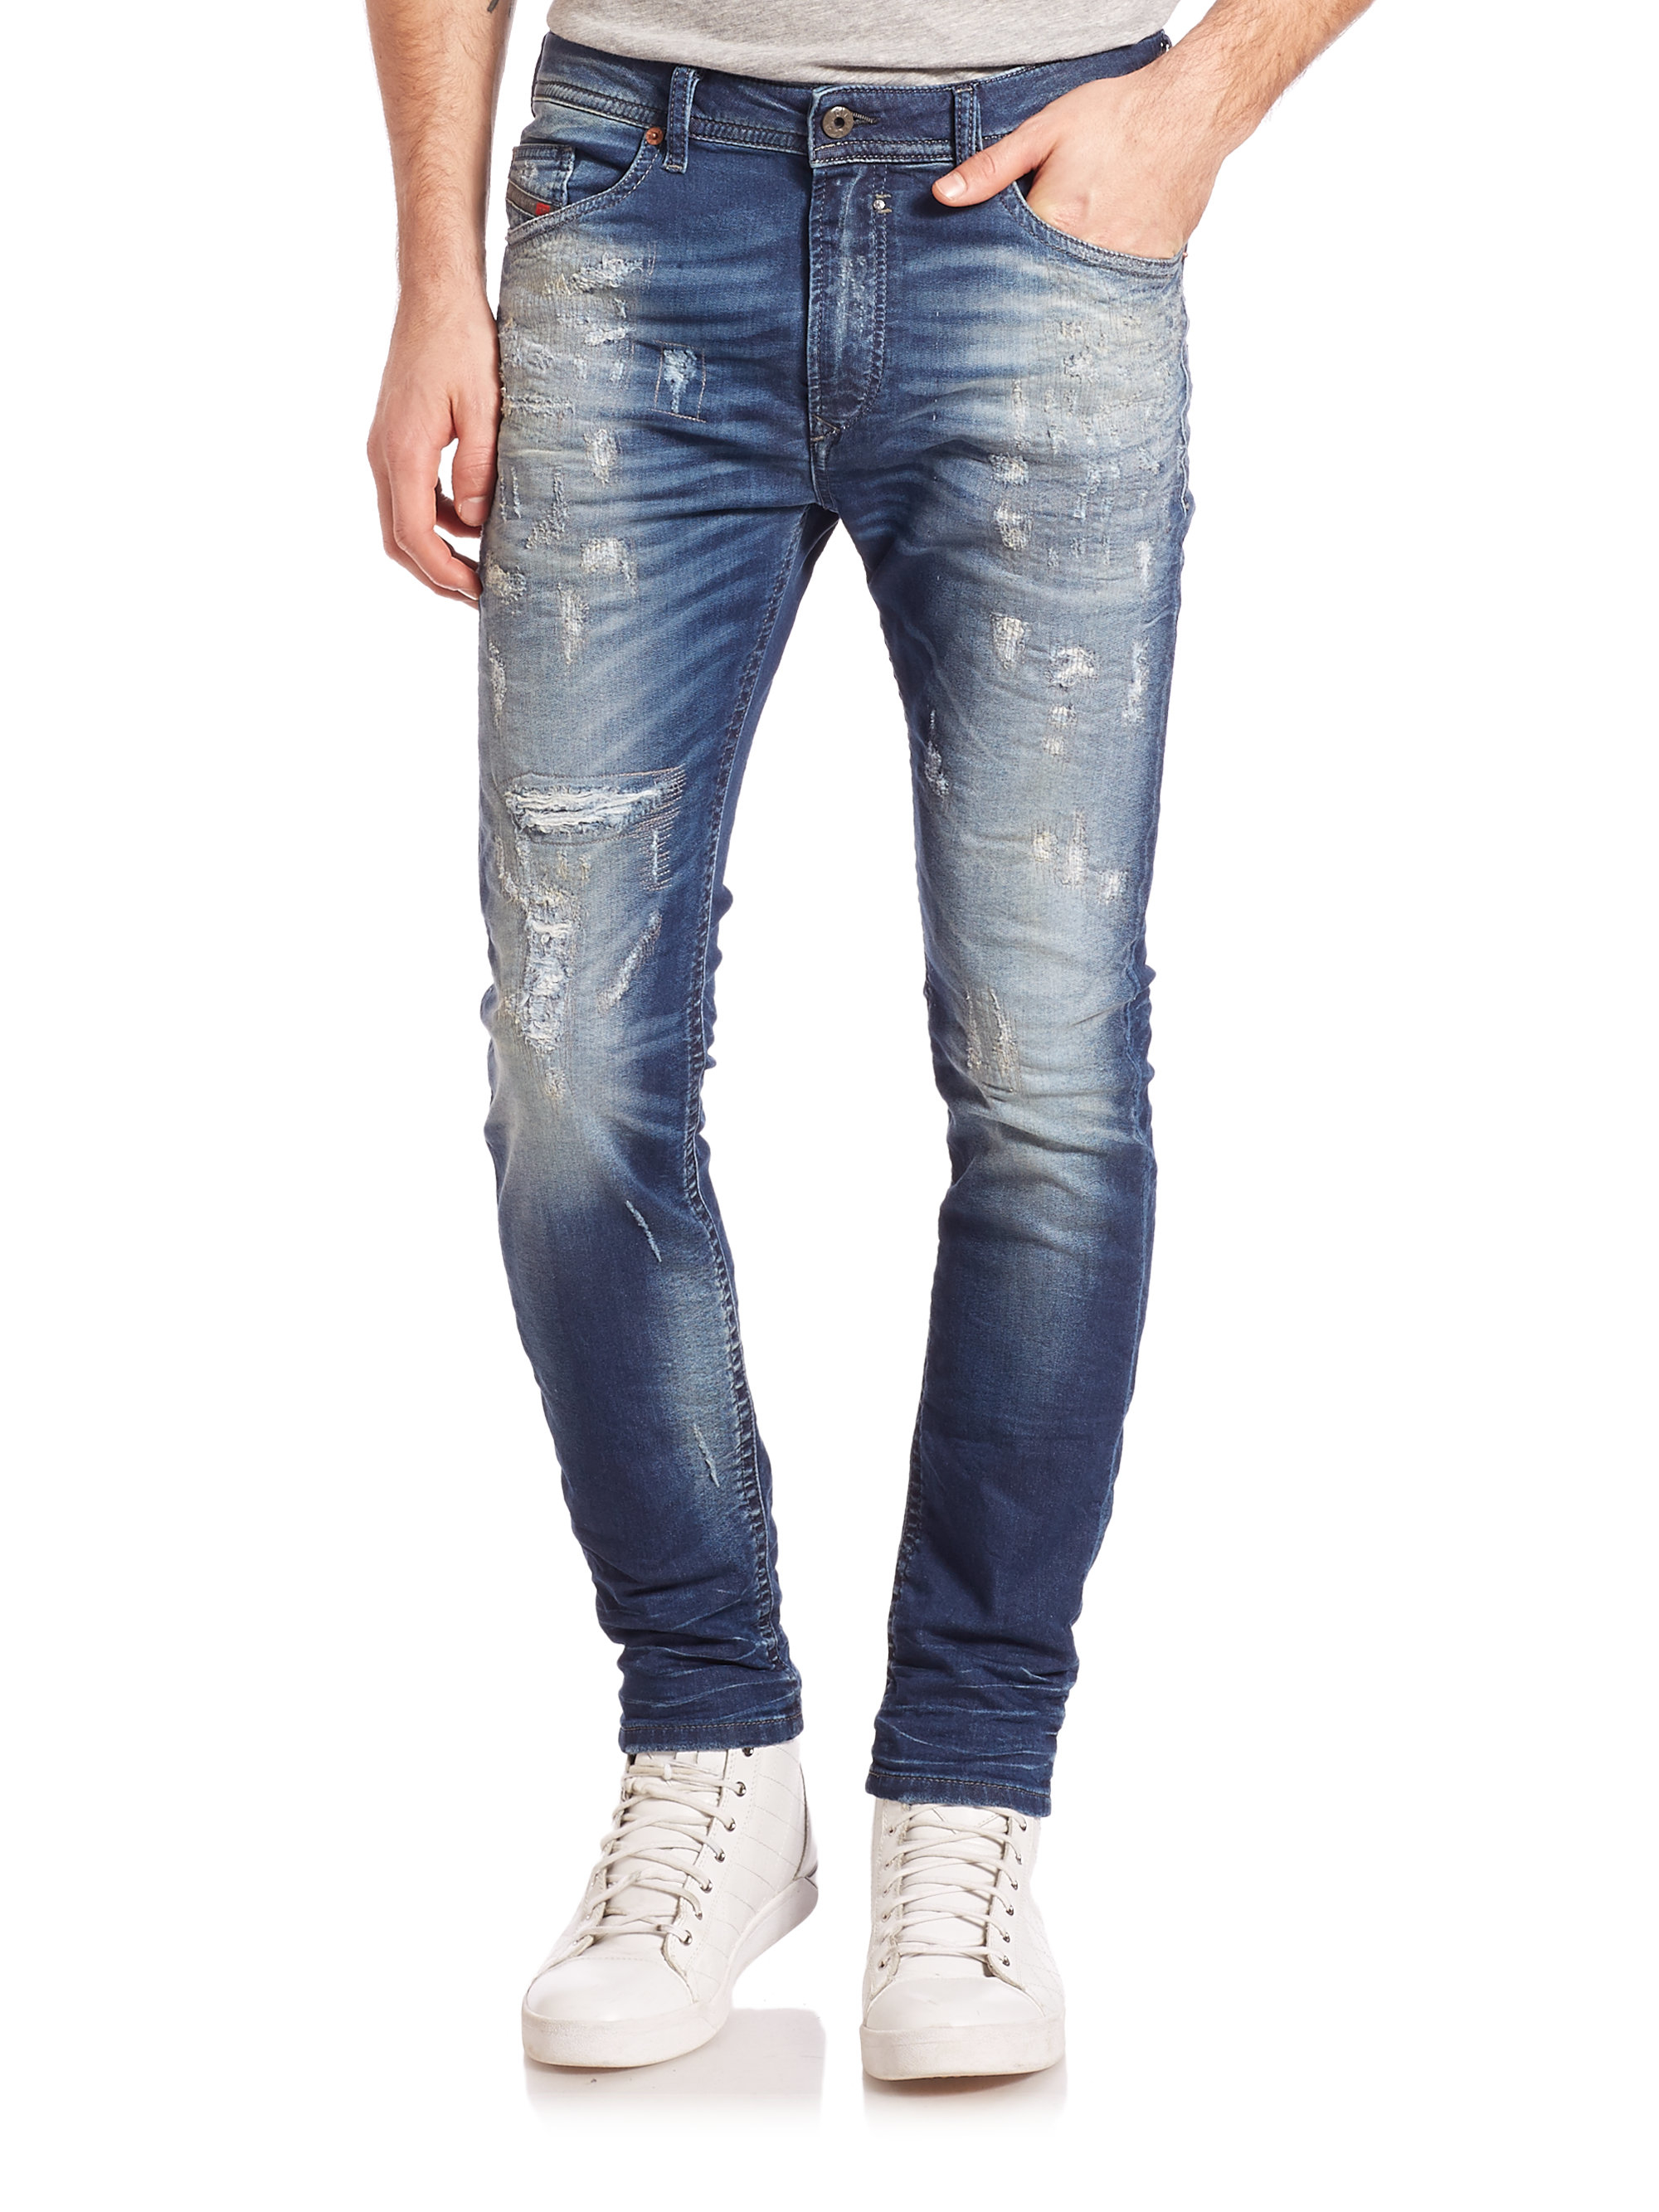 Diesel Spender Distressed Skinny Jeans In Blue For Men Lyst